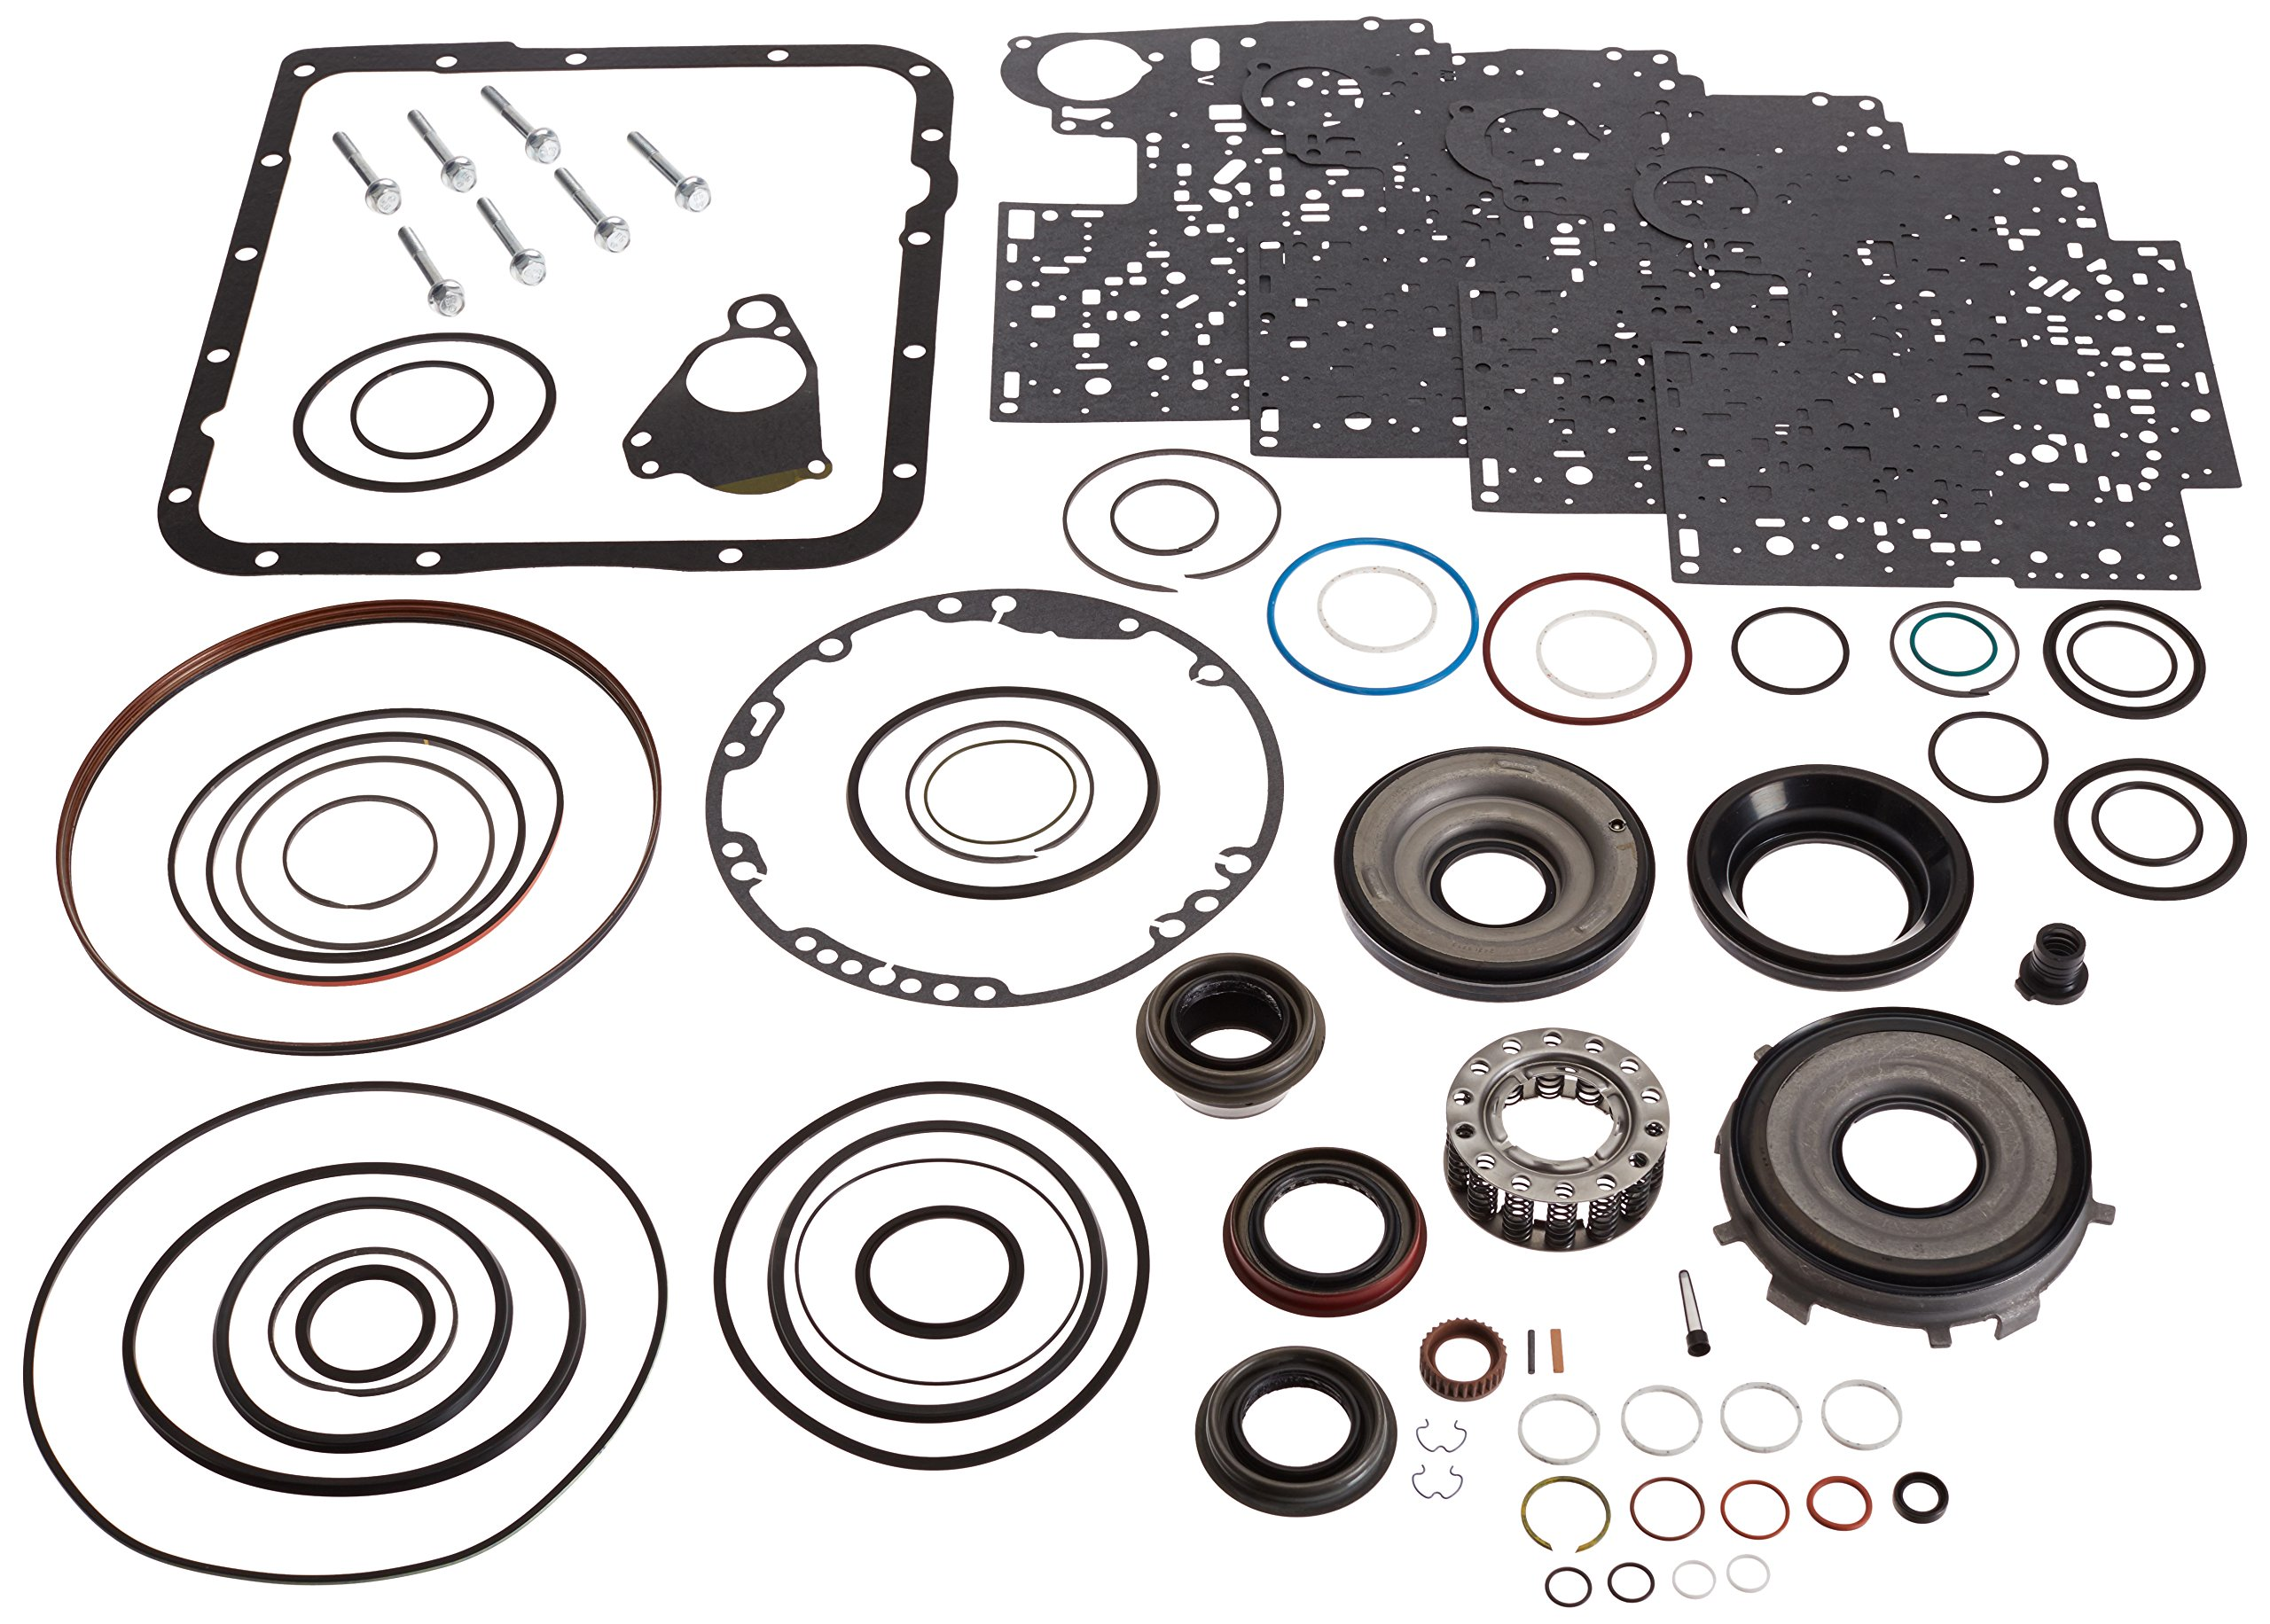 ACDelco 19300335 GM Original Equipment Automatic Transmission Service Gasket Kit by ACDelco